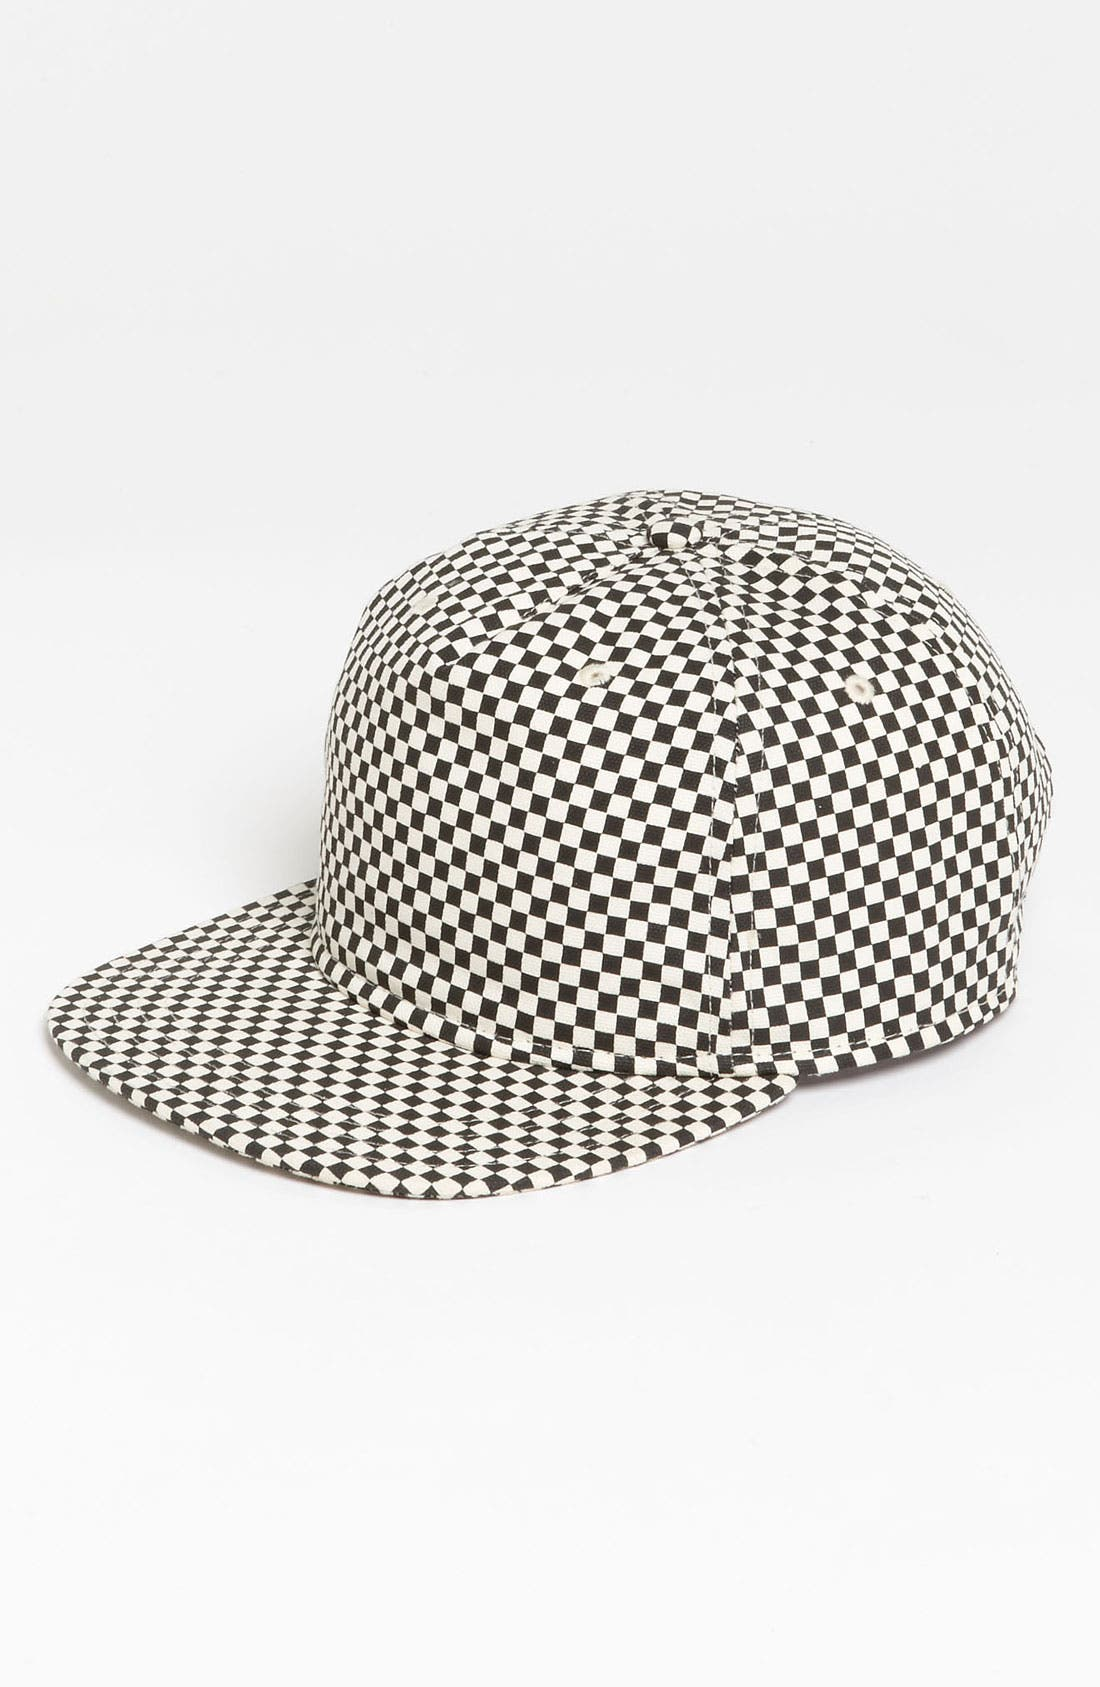 Alternate Image 1 Selected - Vans 'Checkerboard' Cap